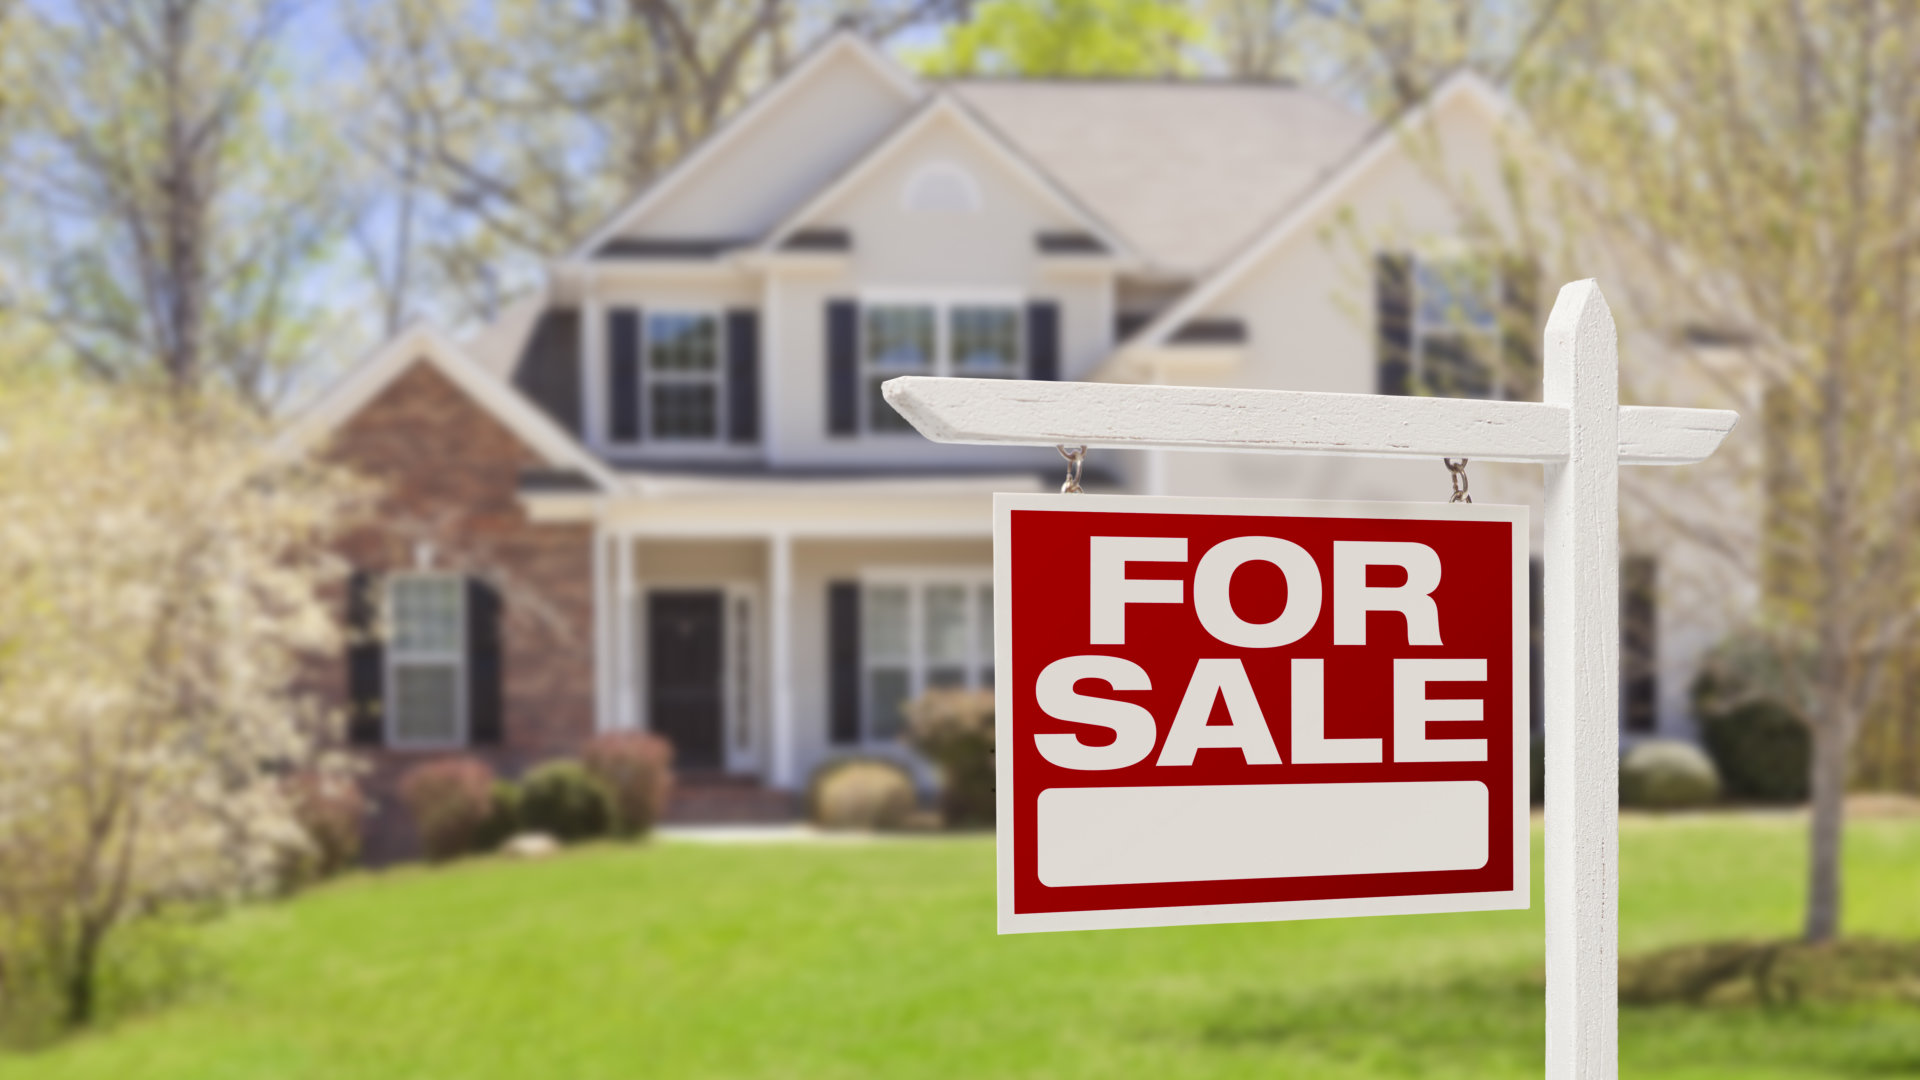 pre-purchase home inspection